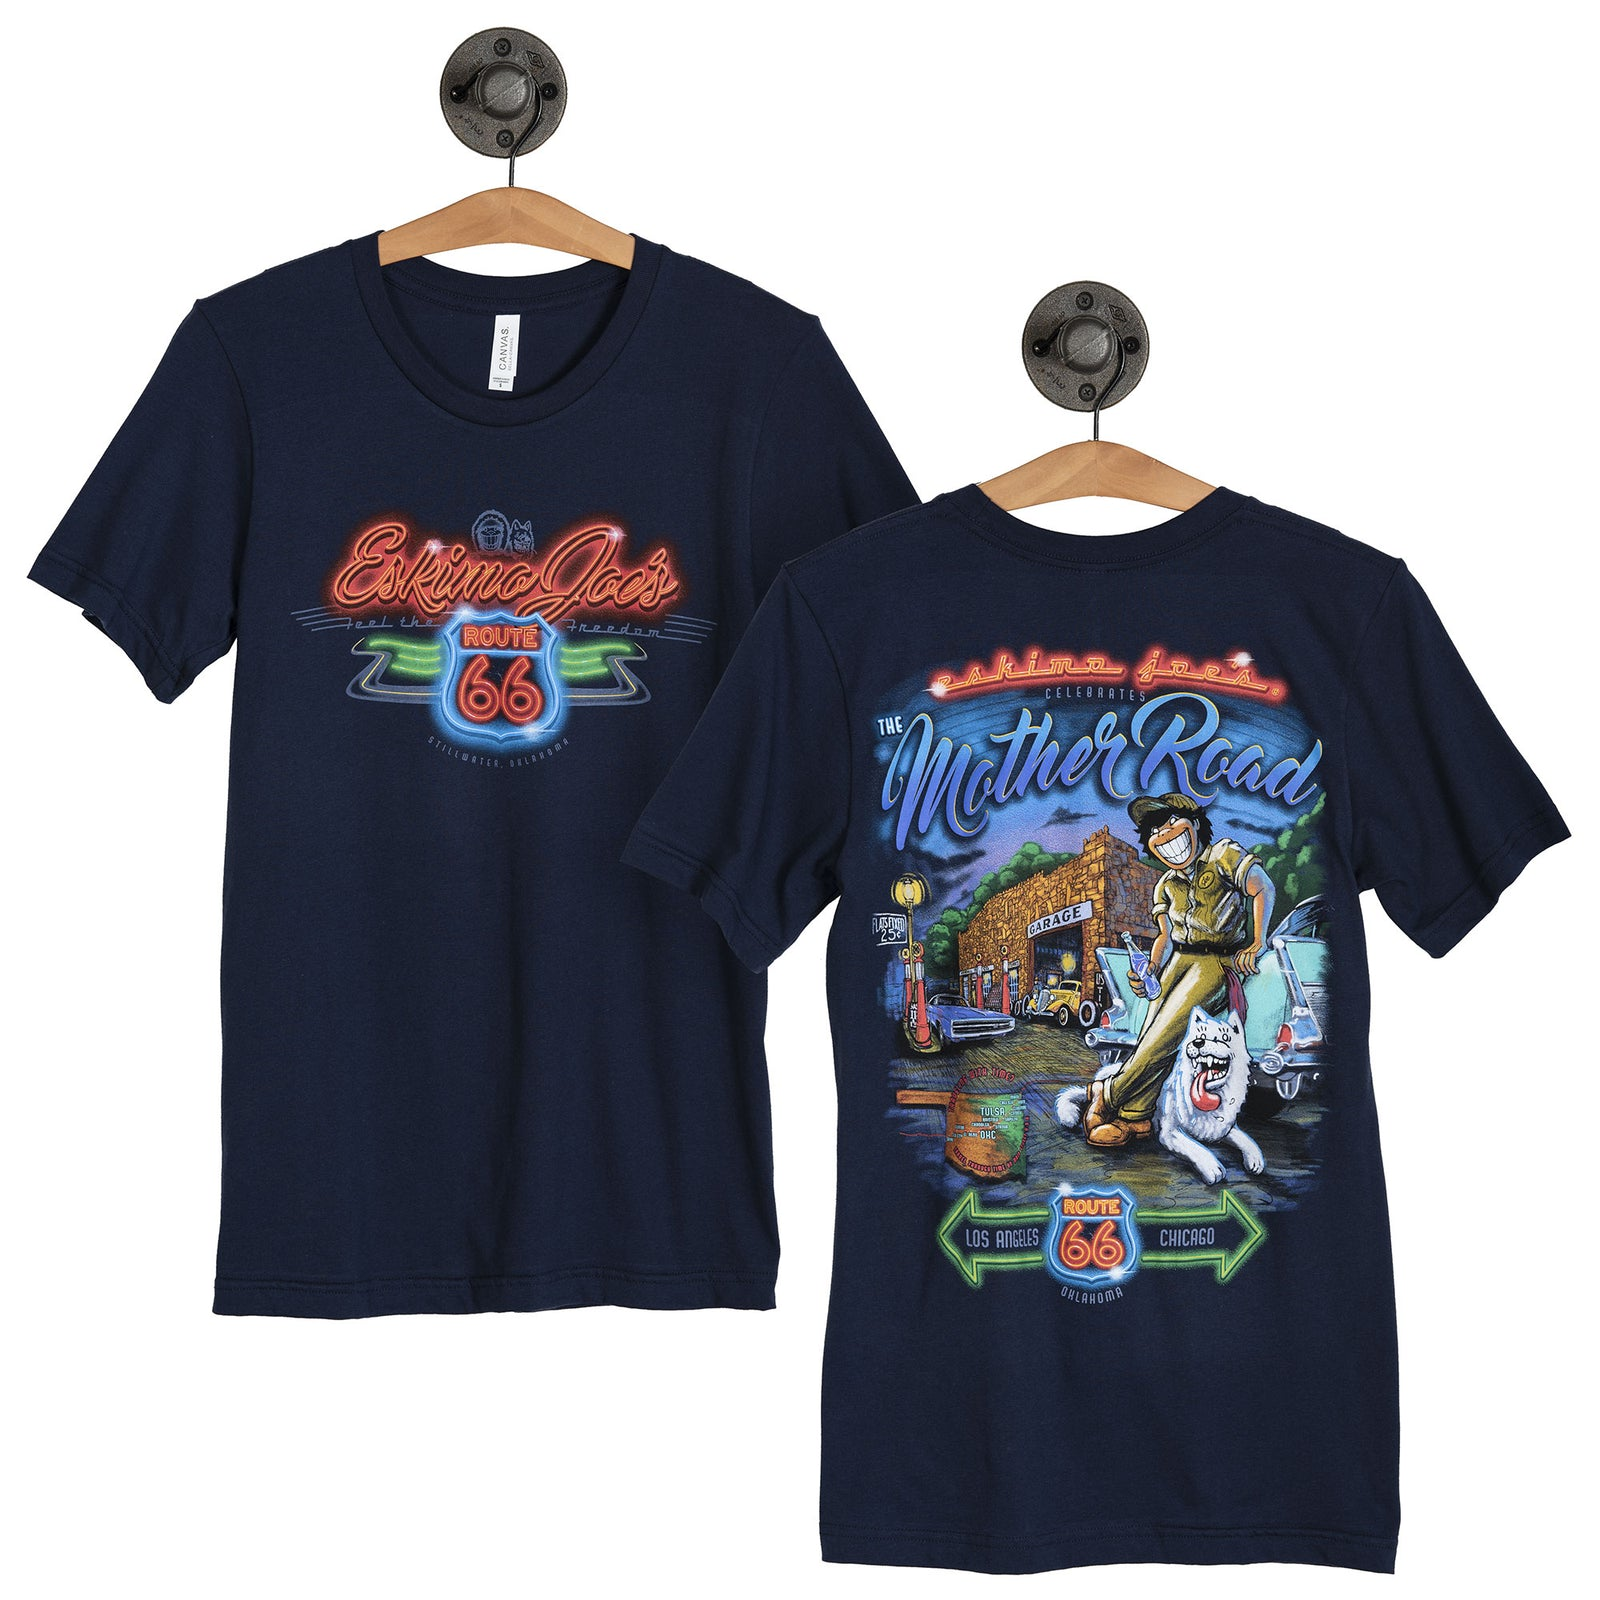 YOUTH ROUTE 66 TEE - YJR66T